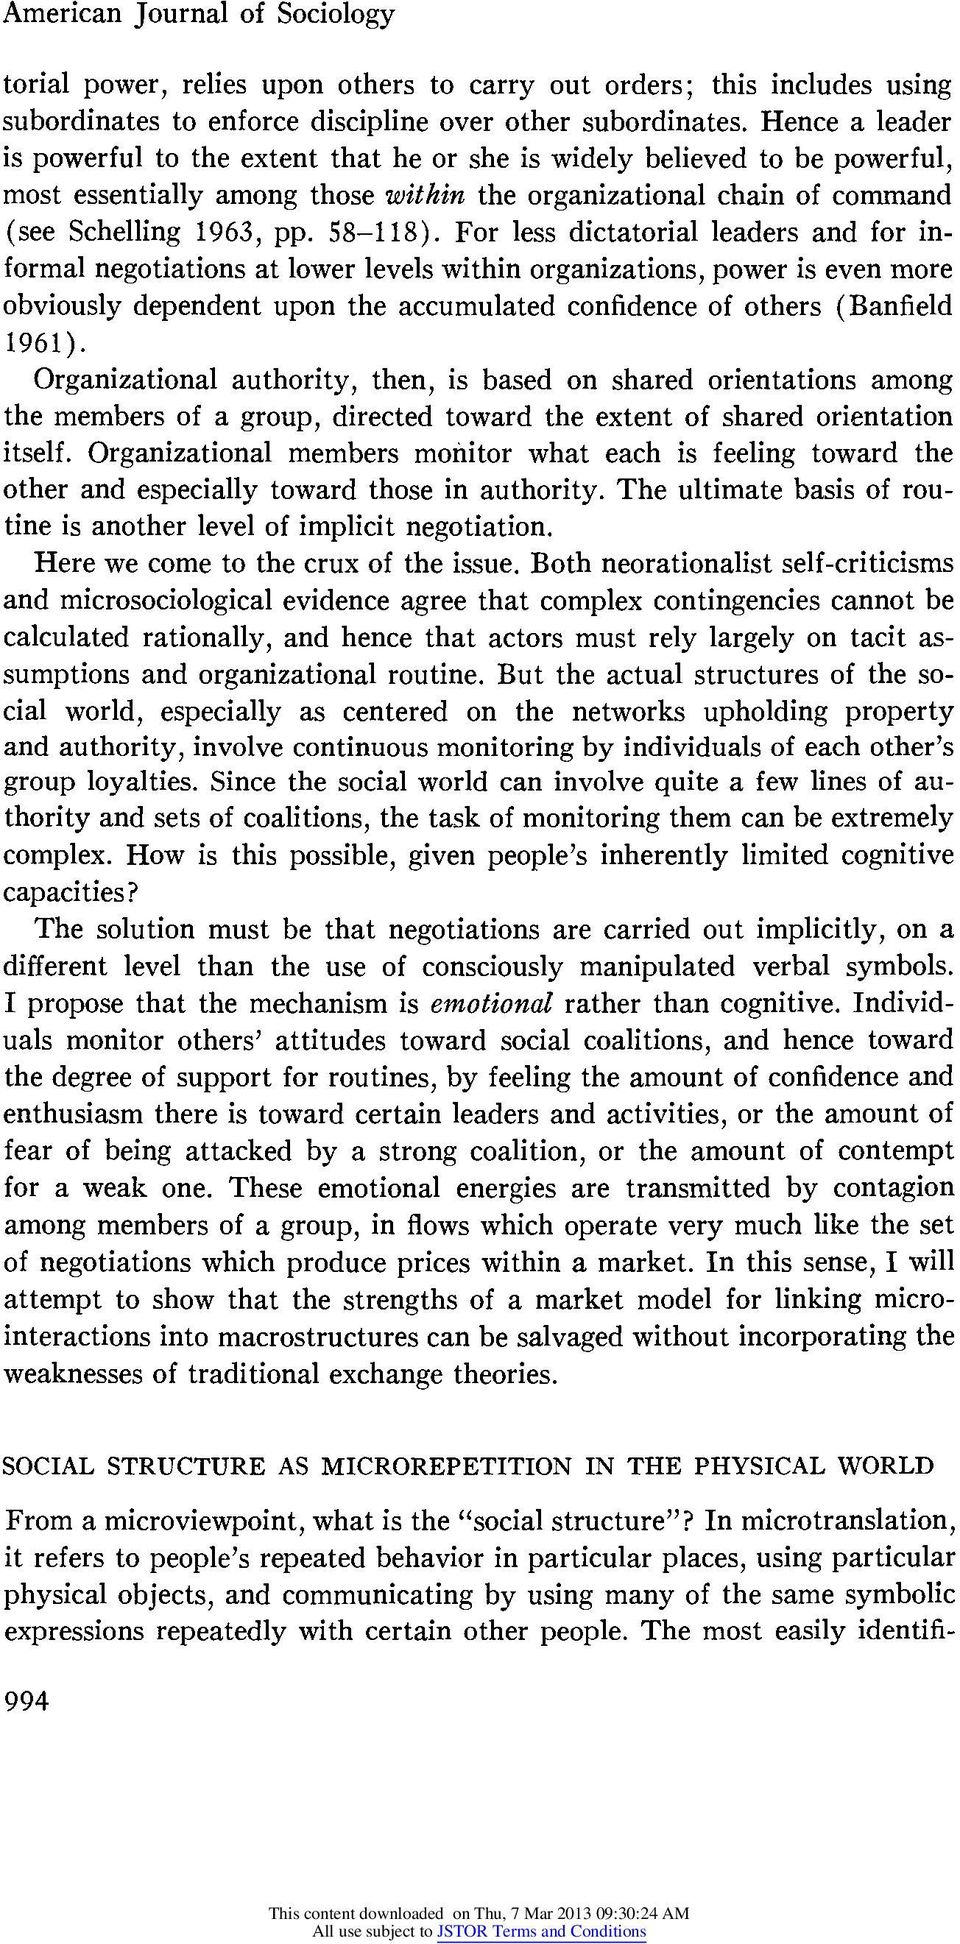 For less dictatorialeaders and for informal negotiations lower levels within organizations, power is even more obviously dependent upon the accumulated confidence of others (Banfield 1961).